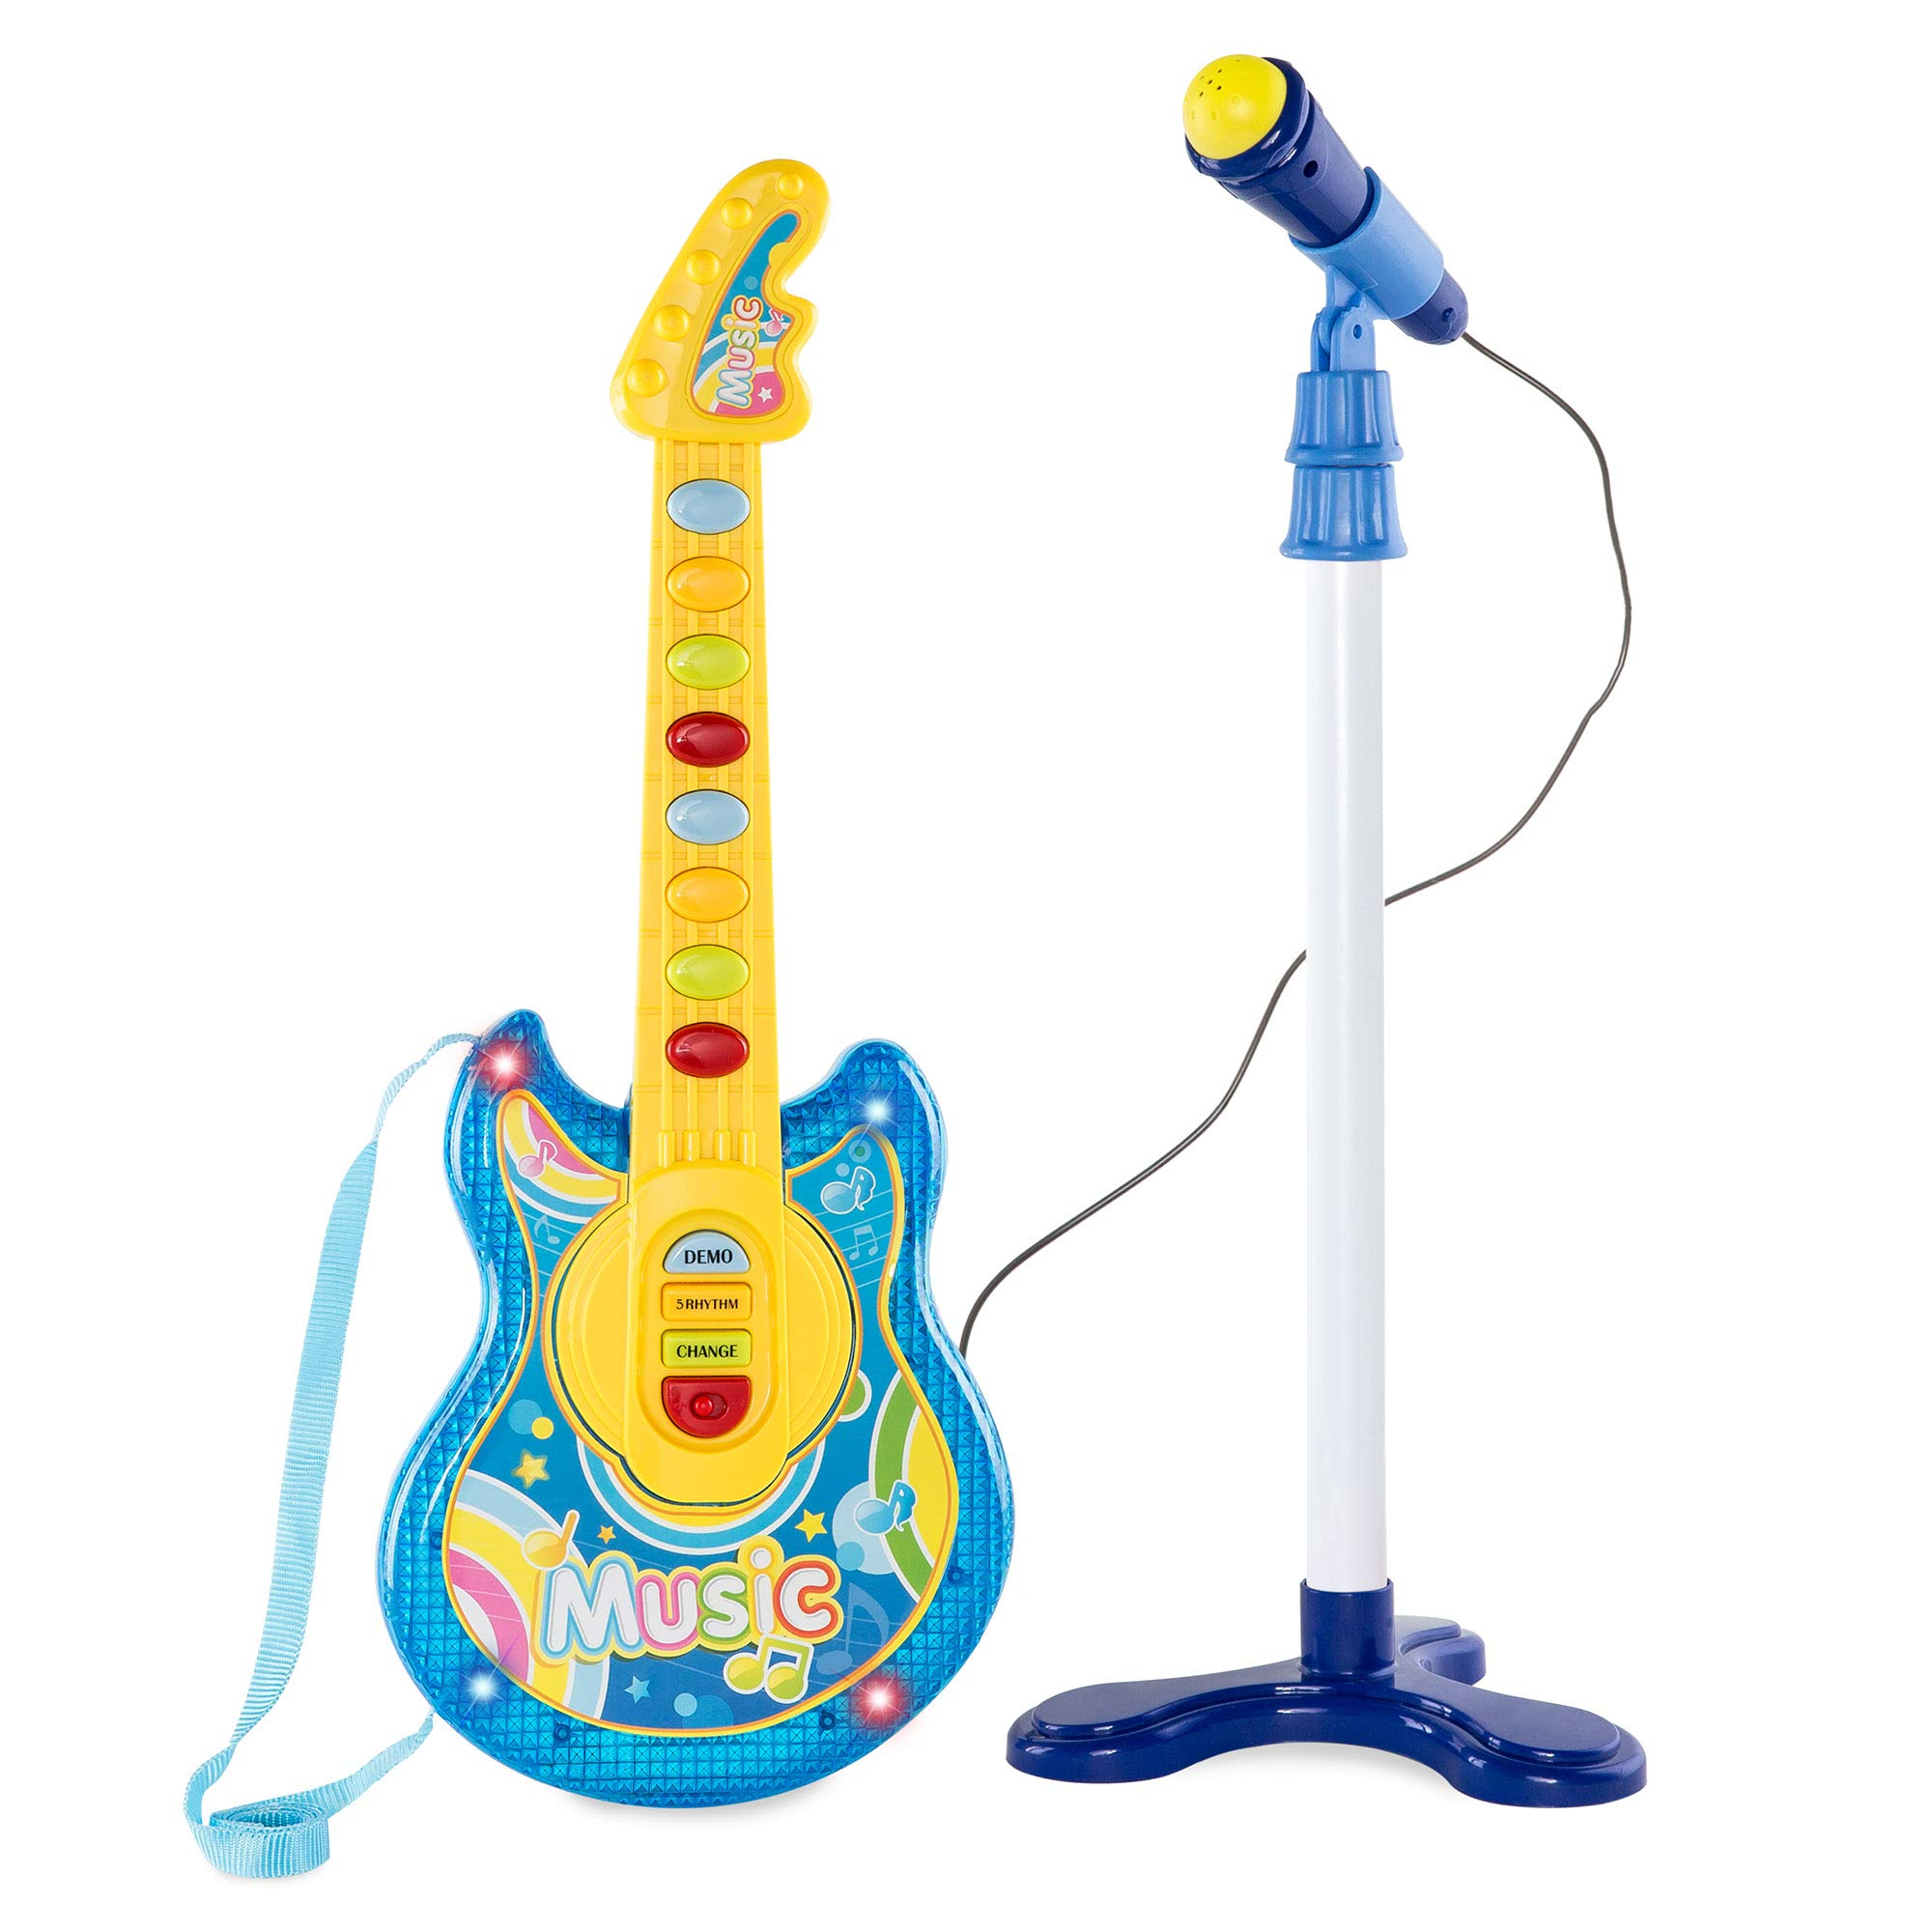 Best Choice Products 19in Kids Toddlers Flash Guitar Pretend Play Musical Instrument Toy w/ Mic, Stand, MP3 Compatible- Blue